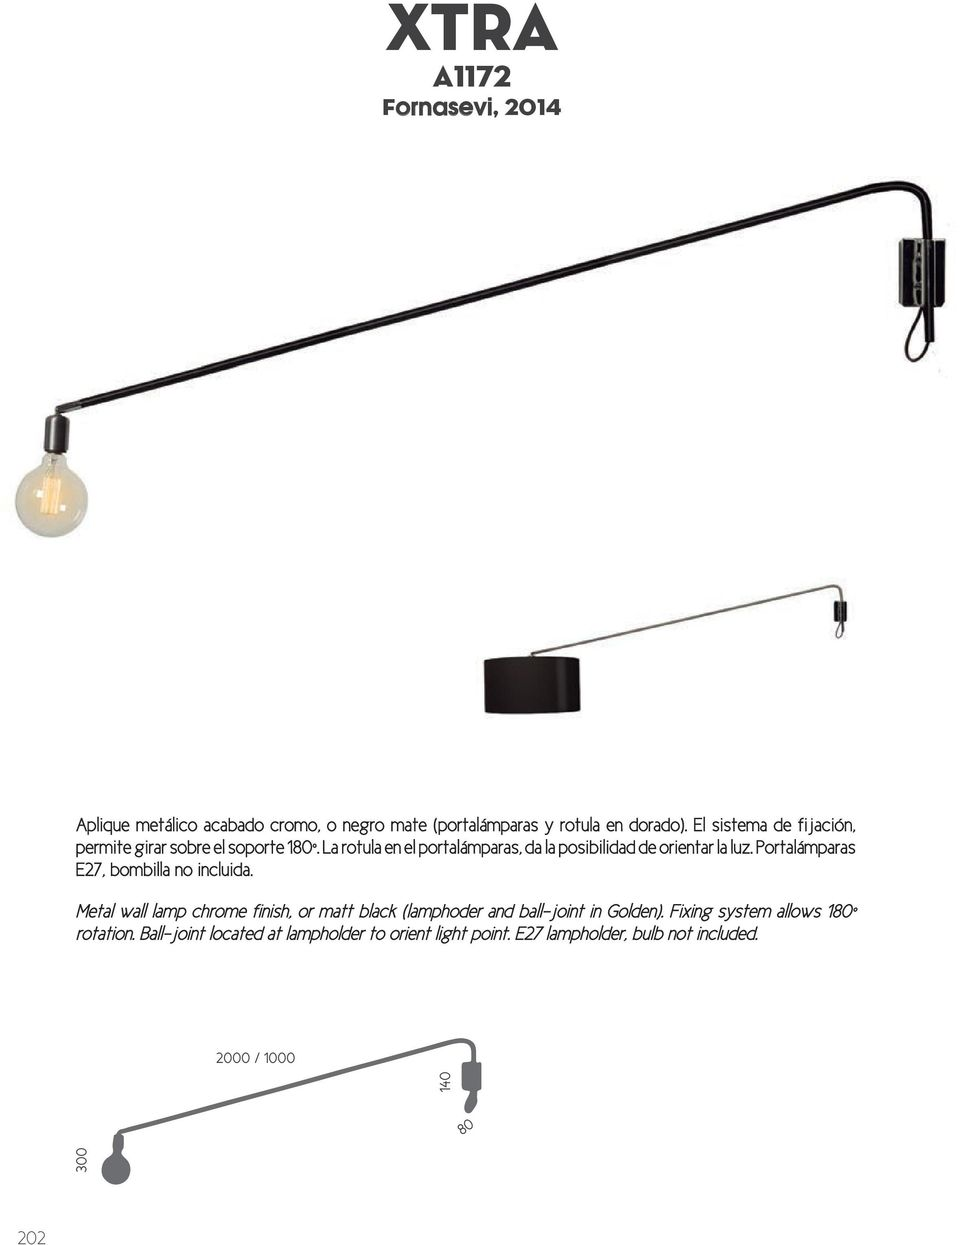 Portalámparas E27, bombilla no incluida. Metal wall lamp chrome finish, or matt black (lamphoder and ball-joint in Golden).